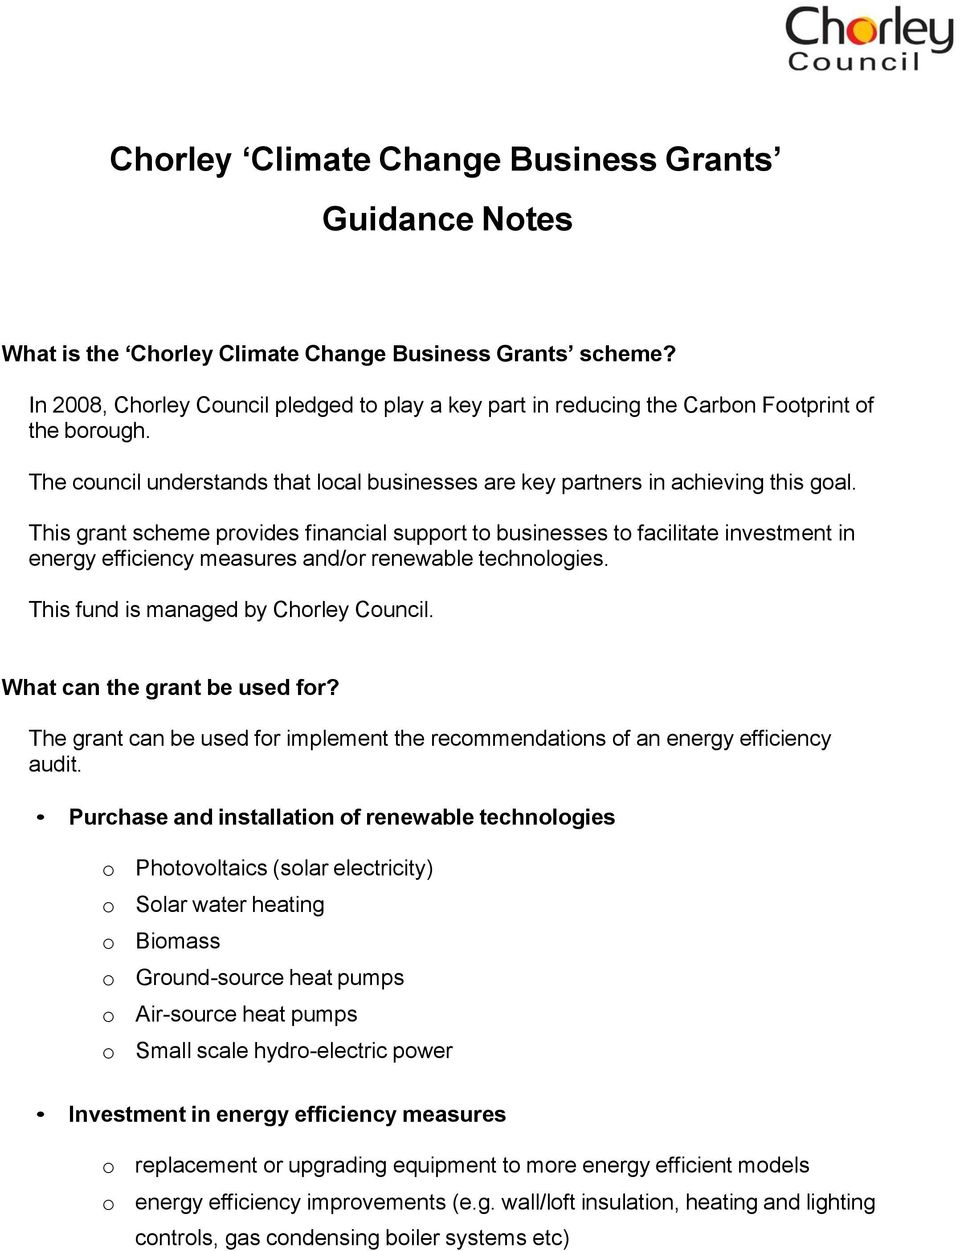 This grant scheme provides financial support to businesses to facilitate investment in energy efficiency measures and/or renewable technologies. This fund is managed by Chorley Council.